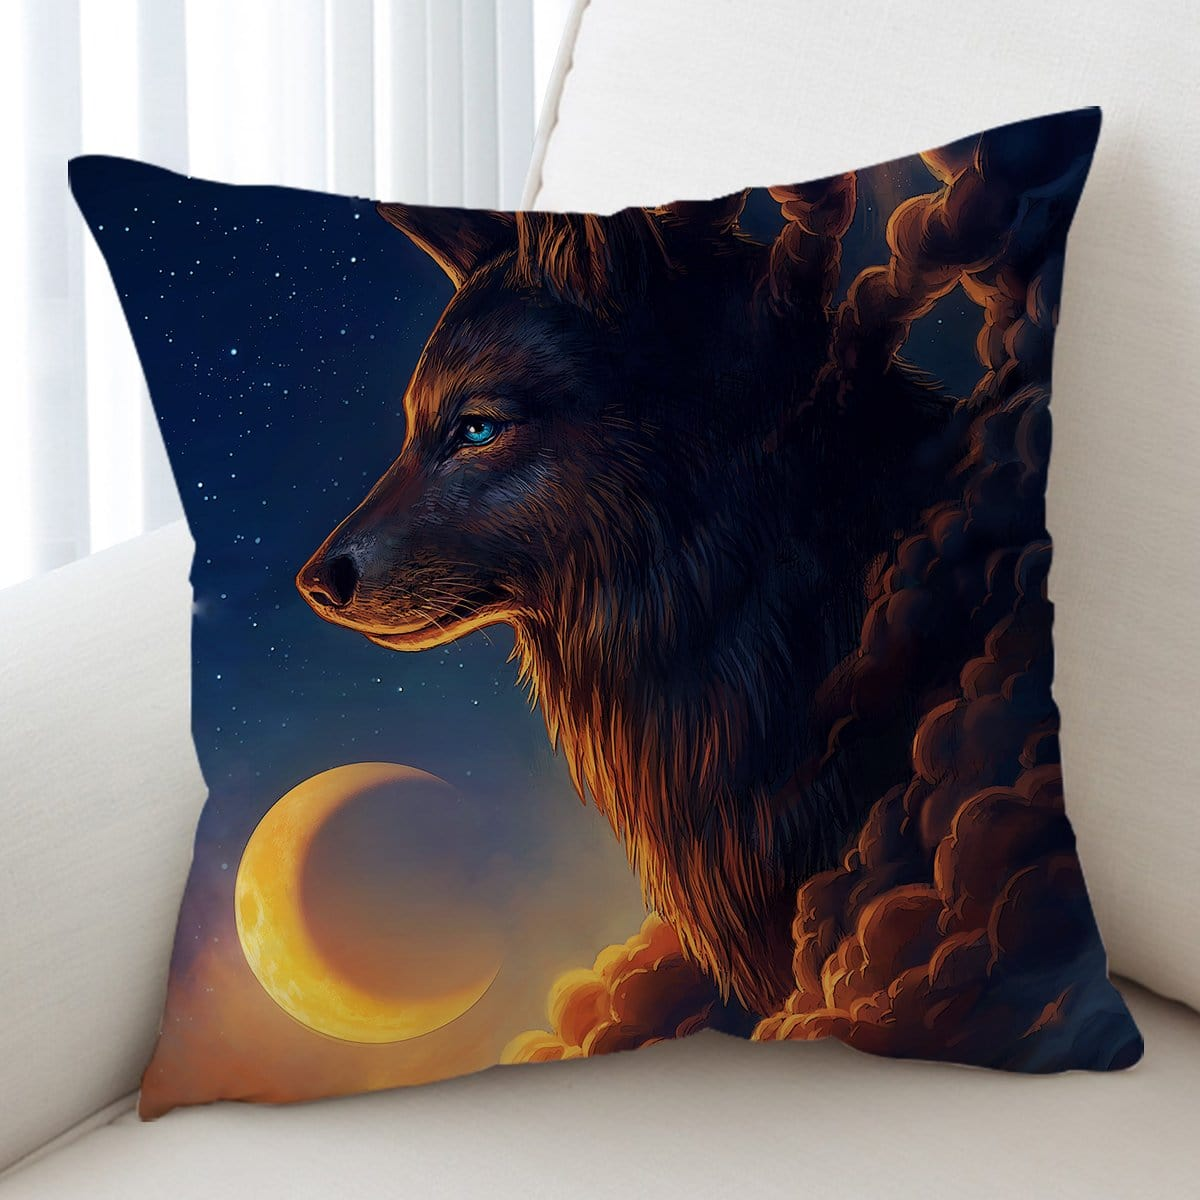 Night Guardian Cushion Cover